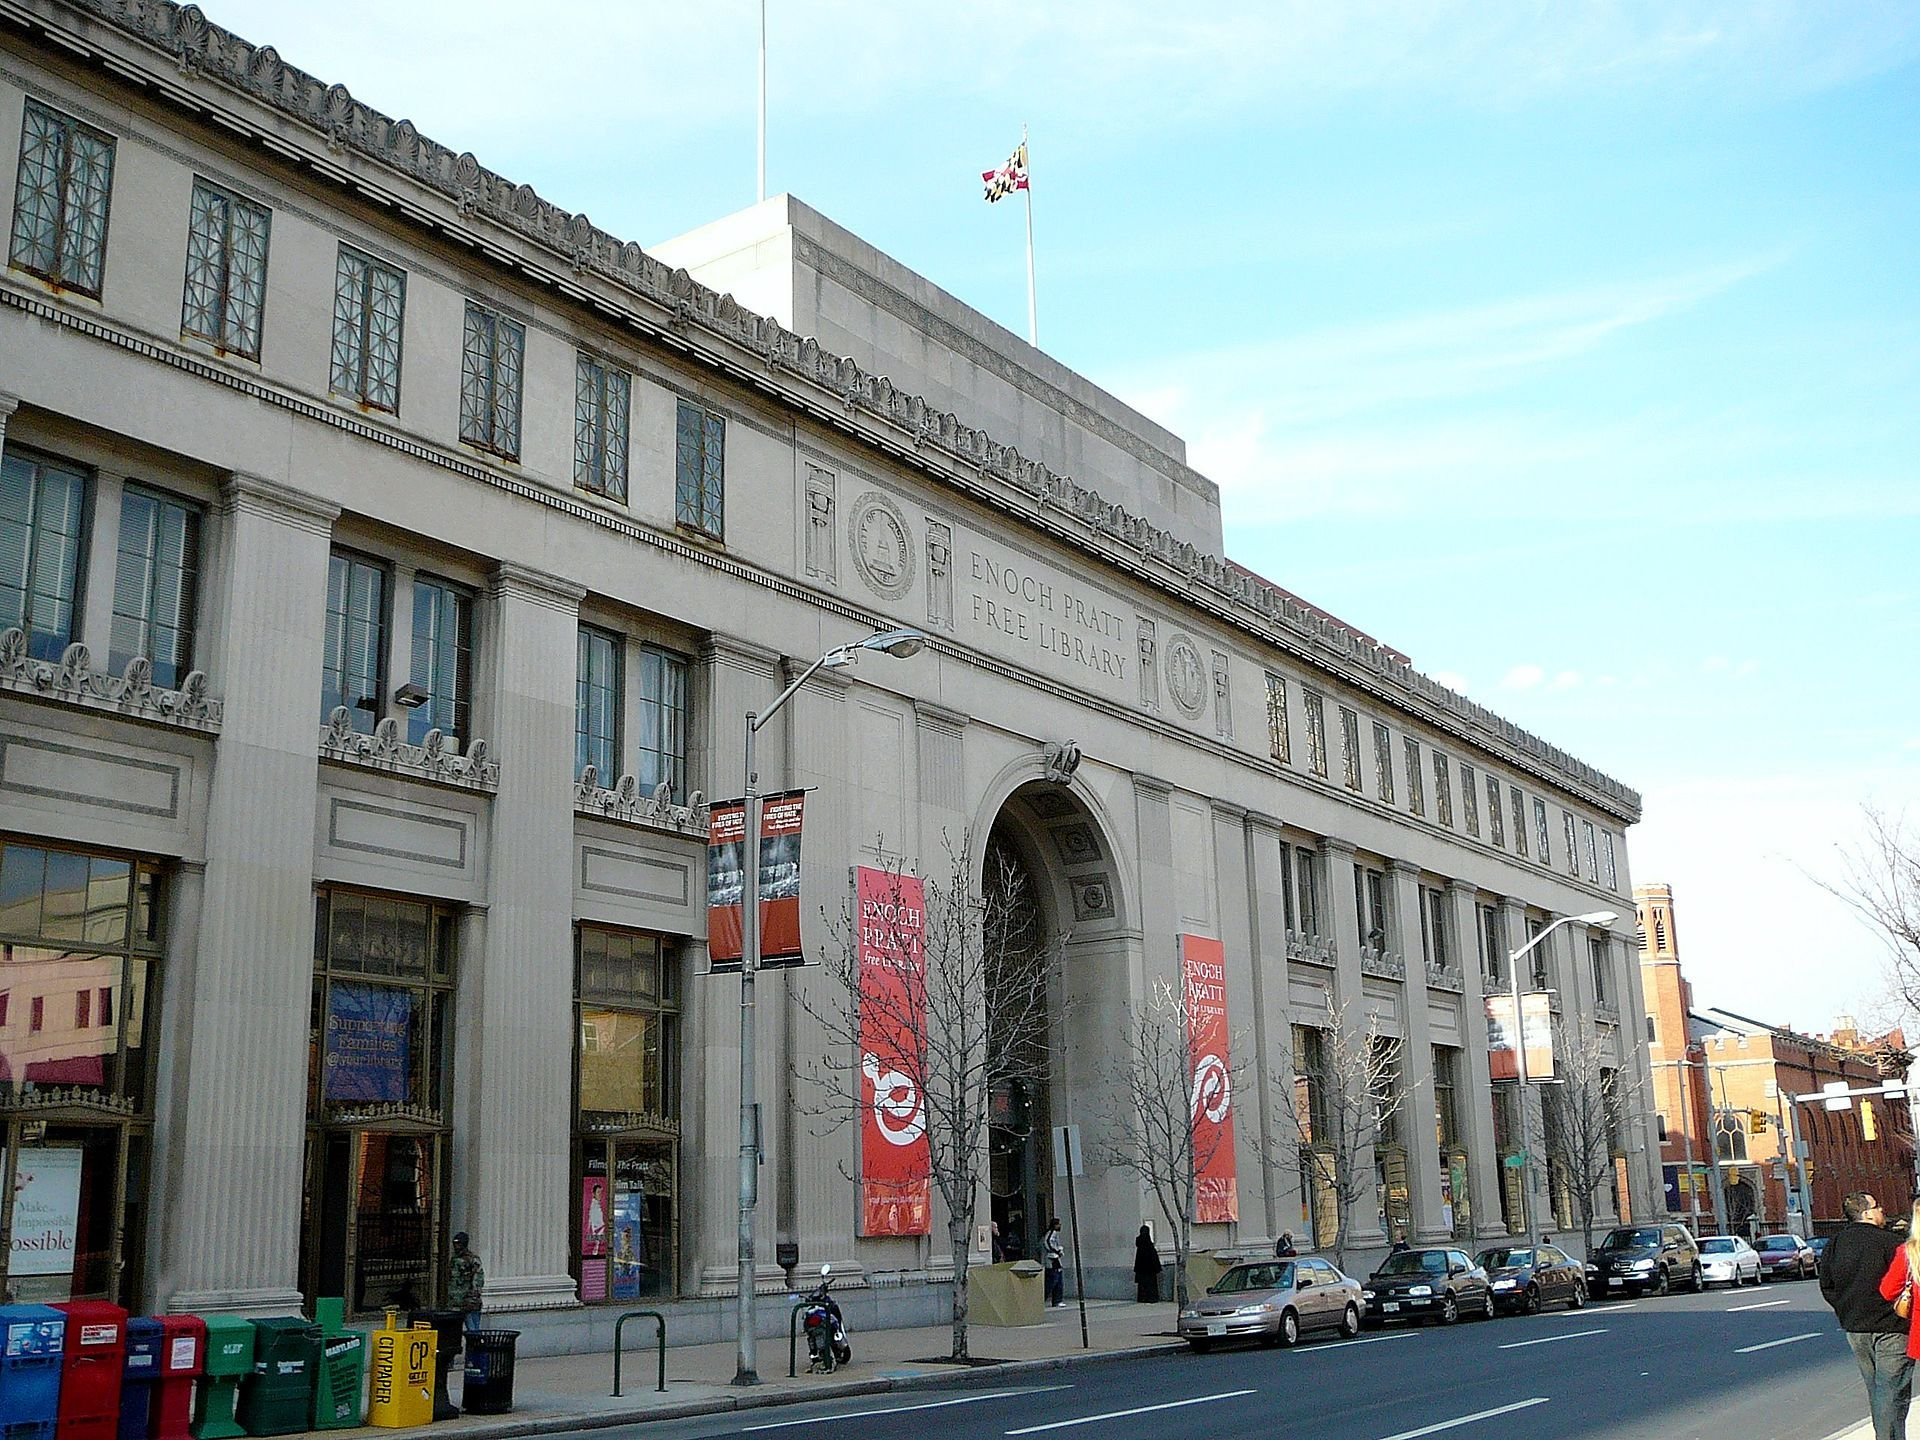 The Enoch Pratt Free Library, located in Baltimore, Maryland, is one of the oldest free public libraries in the United States.